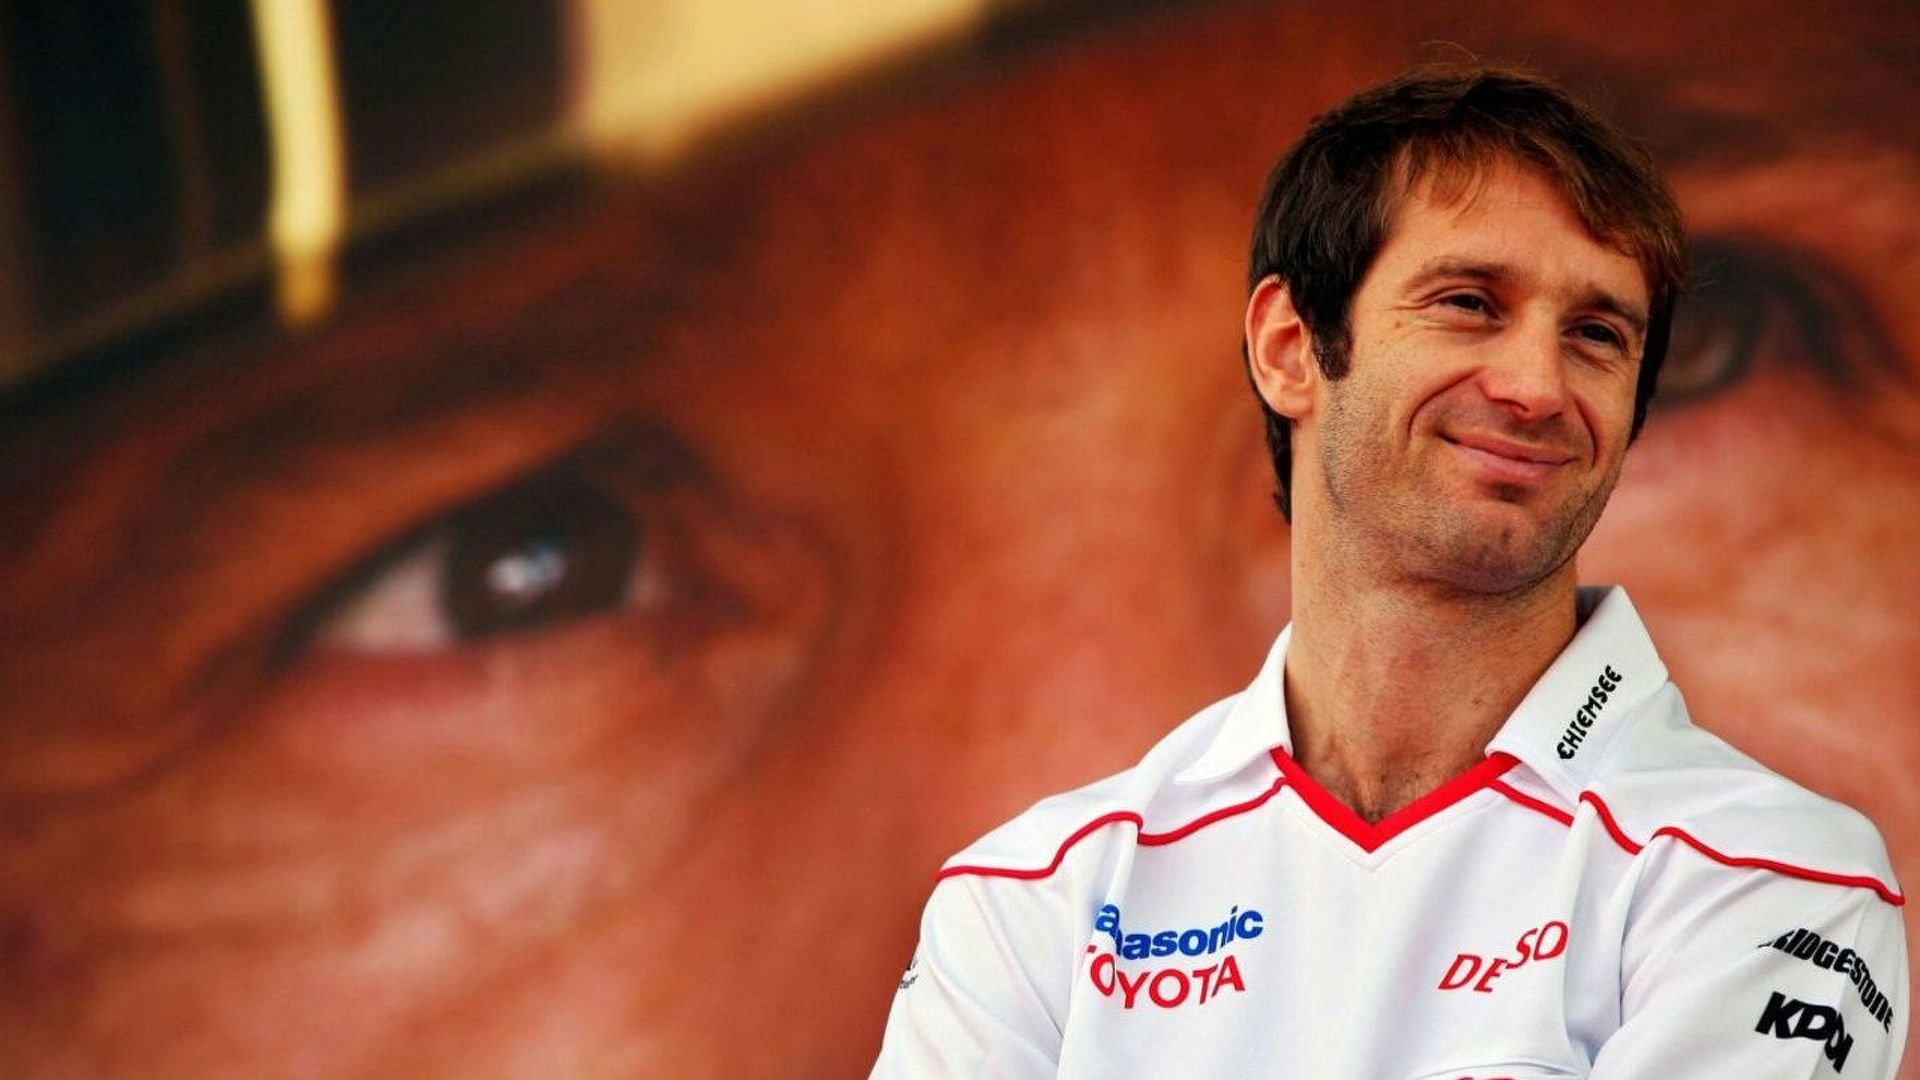 Trulli waiting until November for Toyota fate